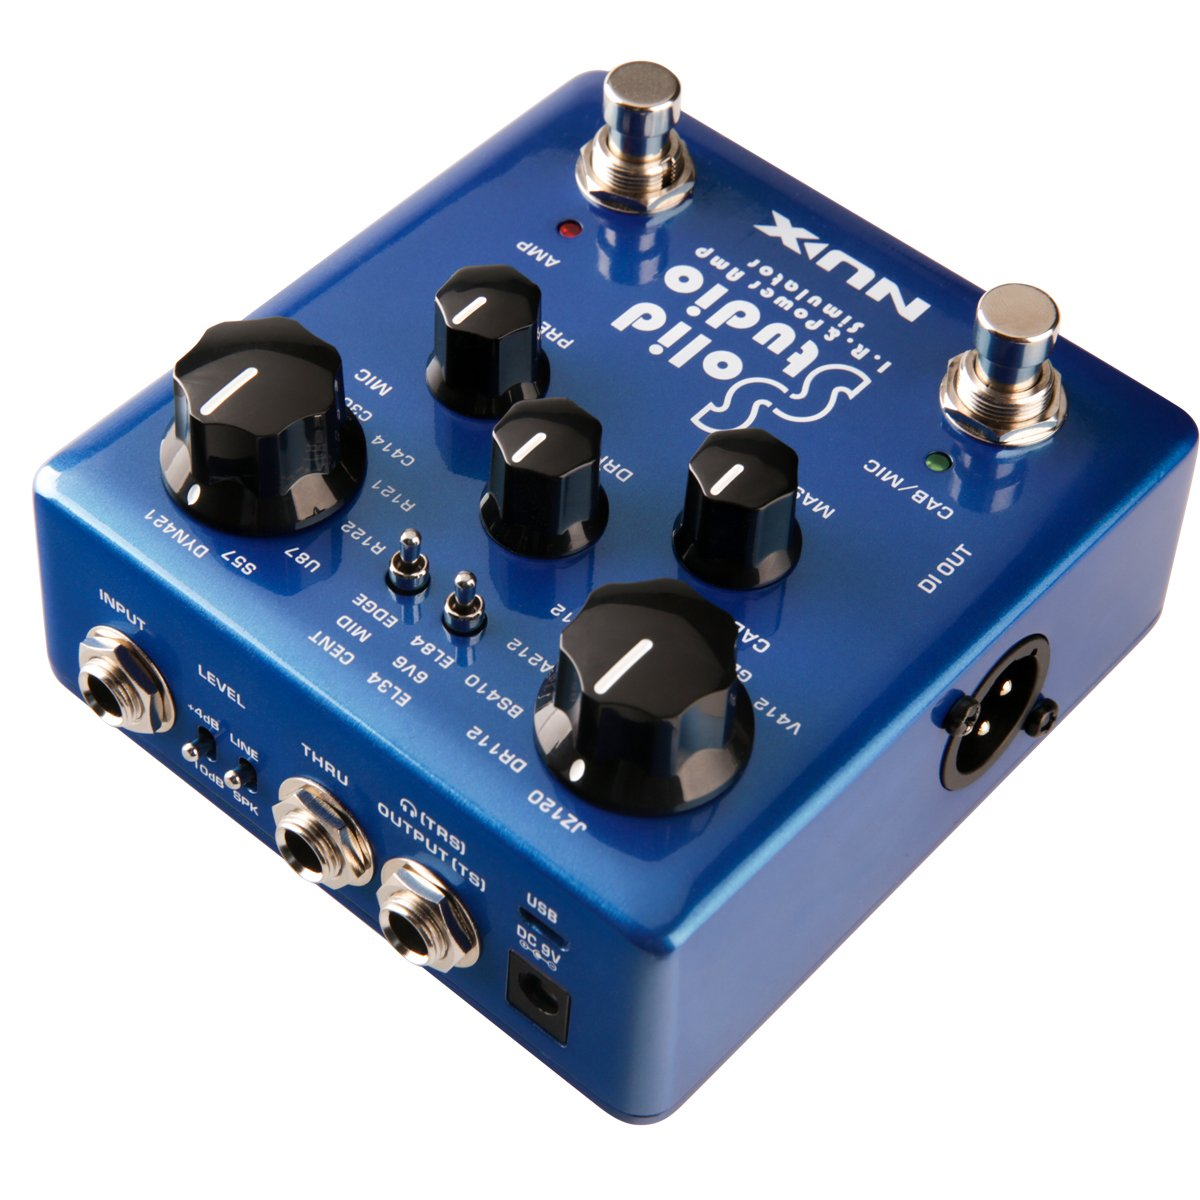 Nux Solid Studio Ir Power Amp Simulator Loader With Is It Ok To Put A State Pedal Through Valve Geekchat Built In Cabinet Microphones And Microphone Positions 3